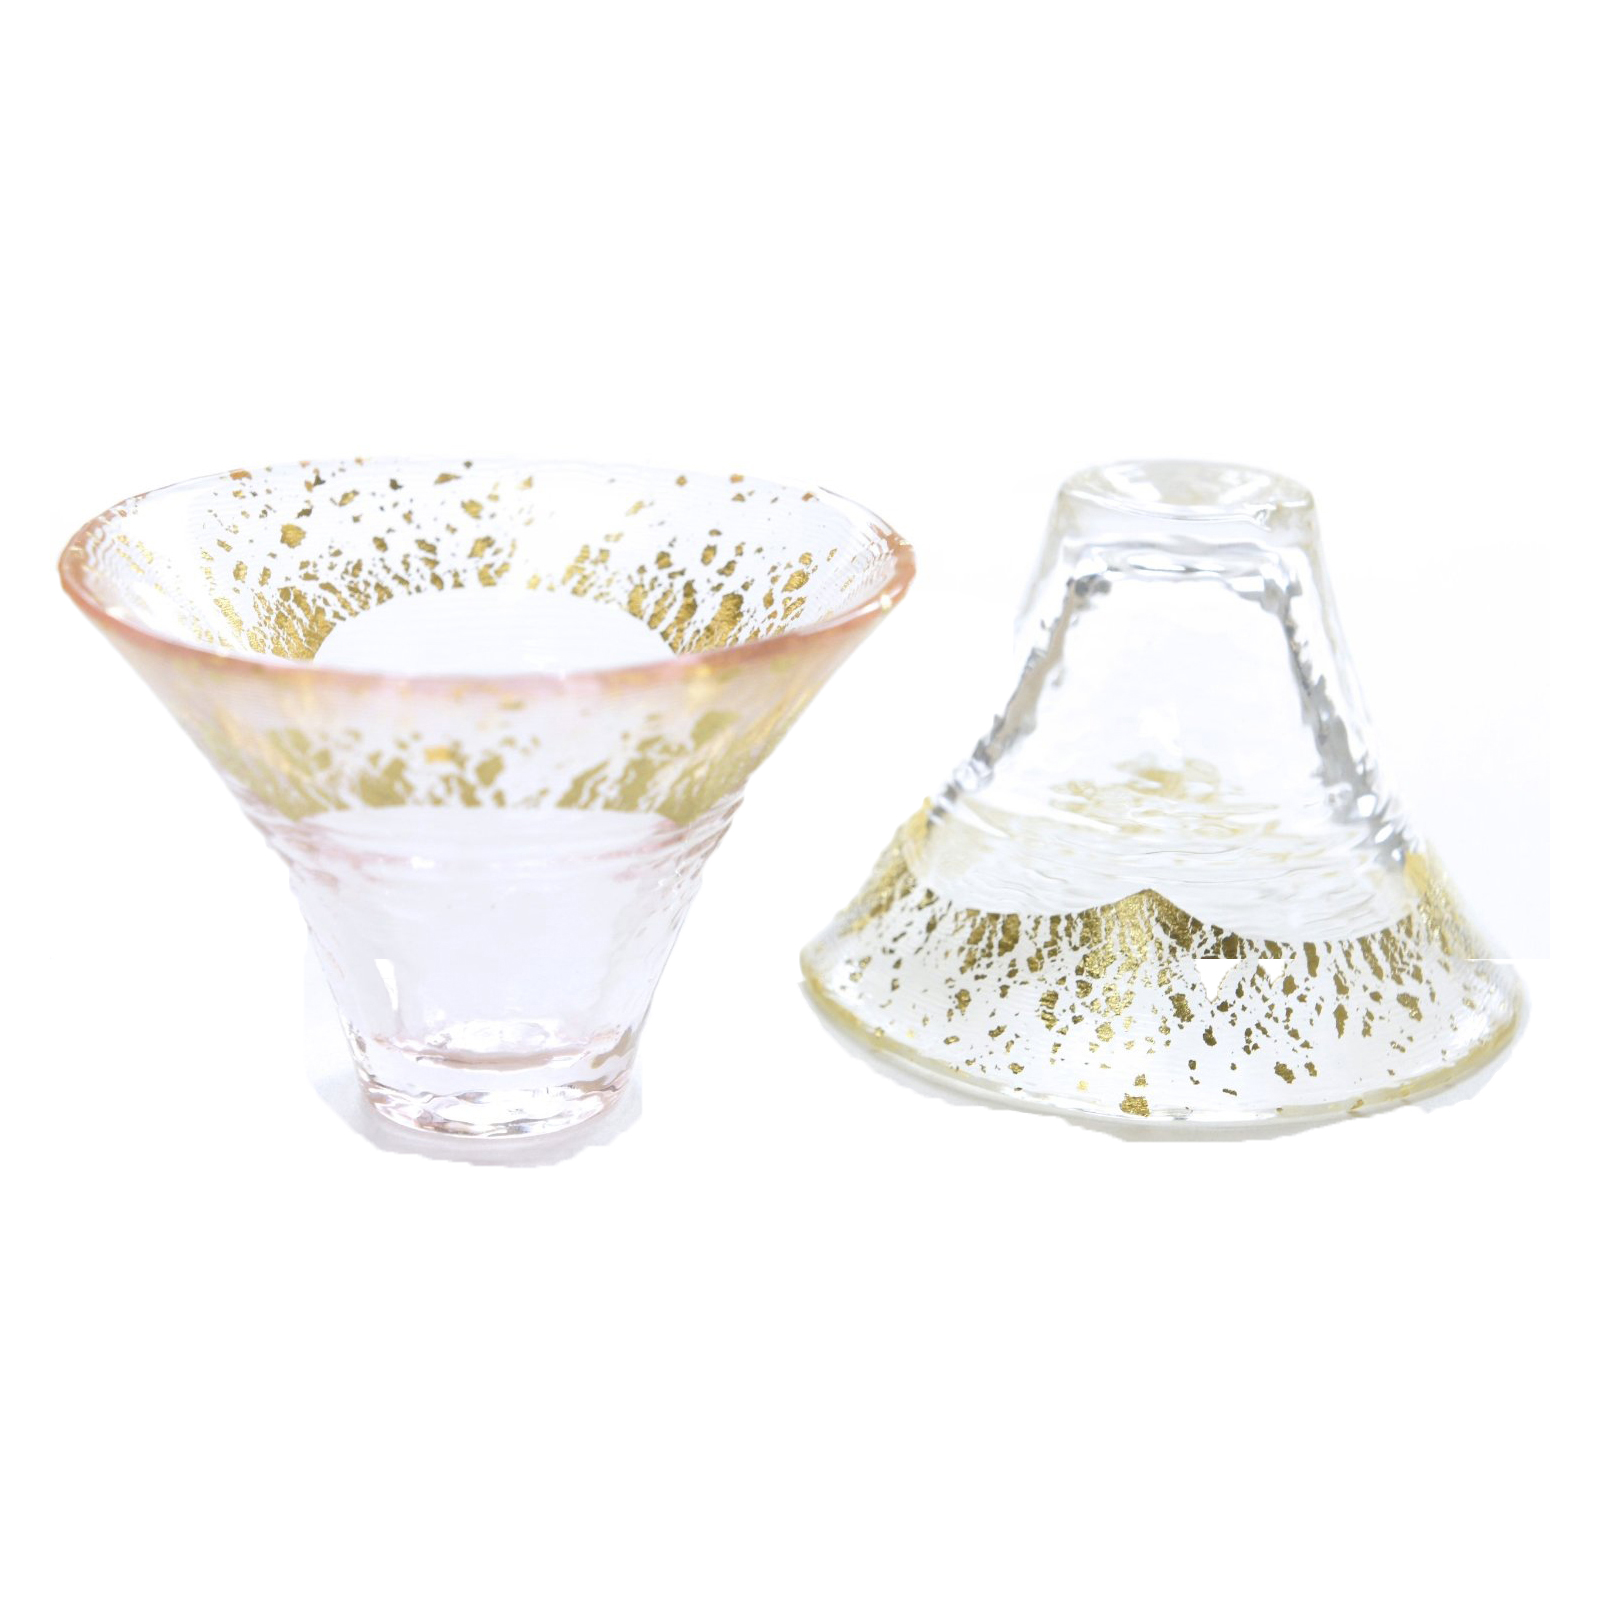 Sakazuki_Sake_Glass_Set_Fuji_Pink_White